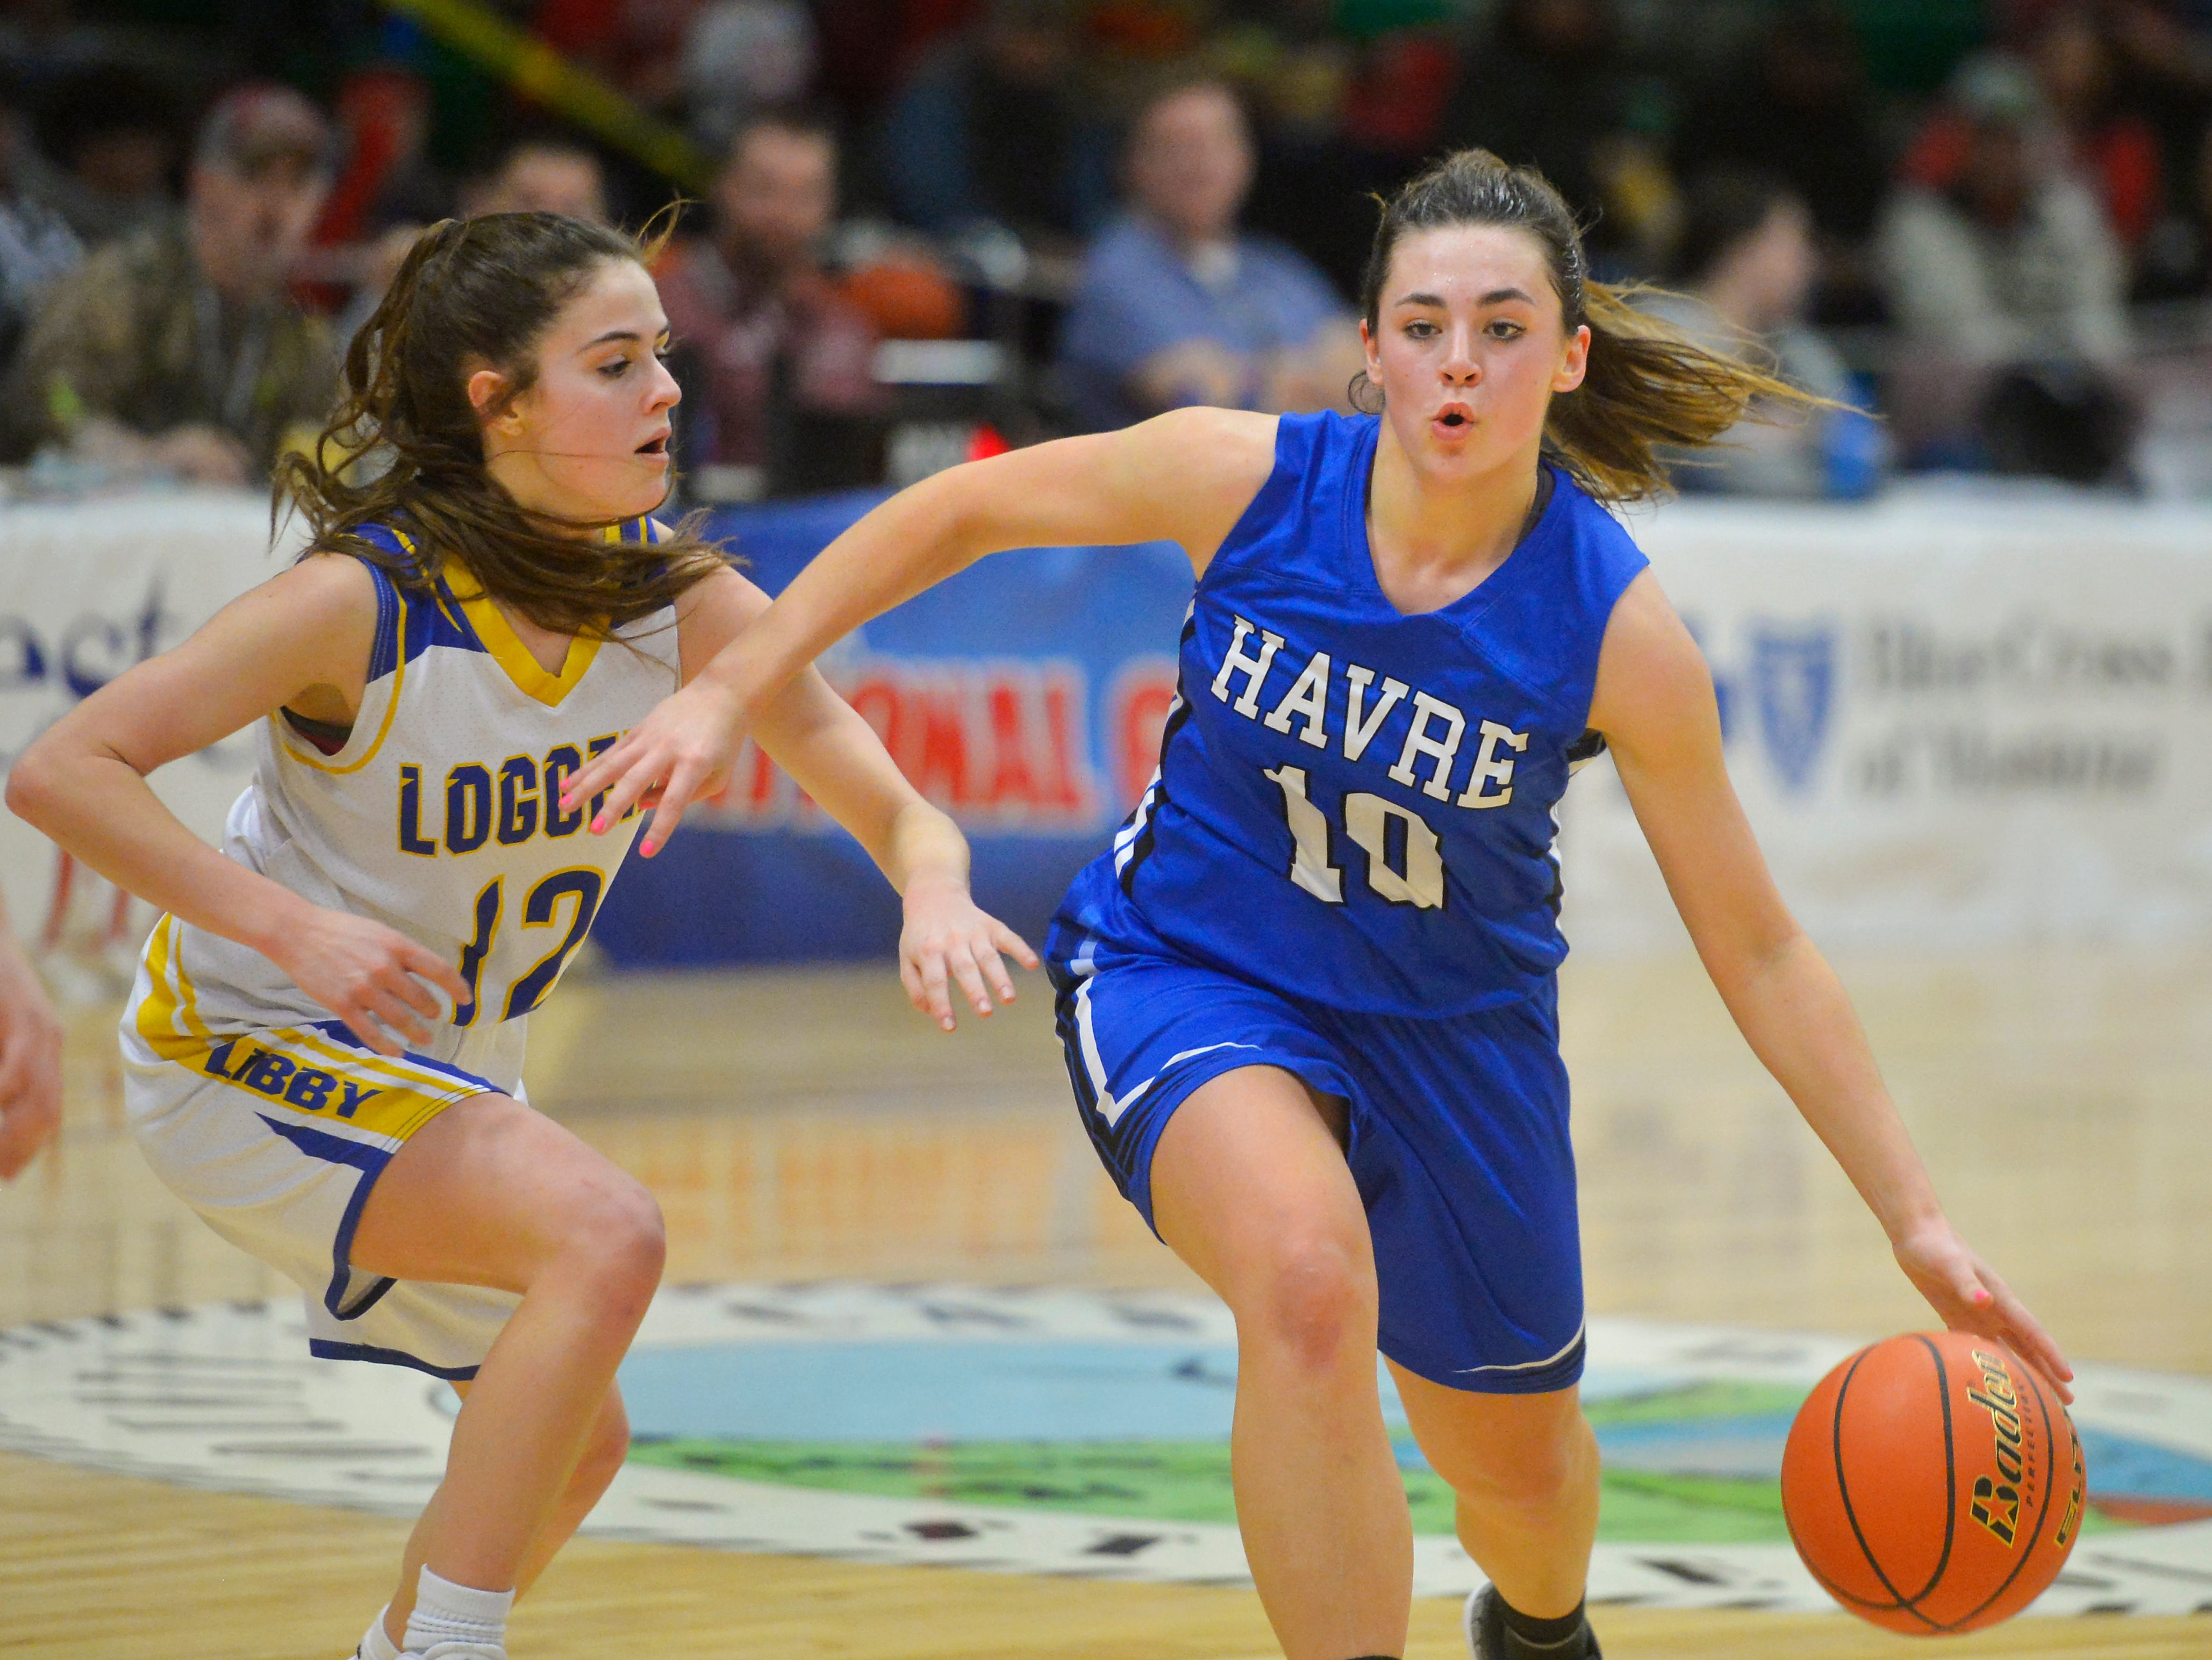 Havre's Kyndadll Keller drives to the basket during Thursday's game against Libby at the Class A State Basketball Tournament in the Four Seasons Arena.